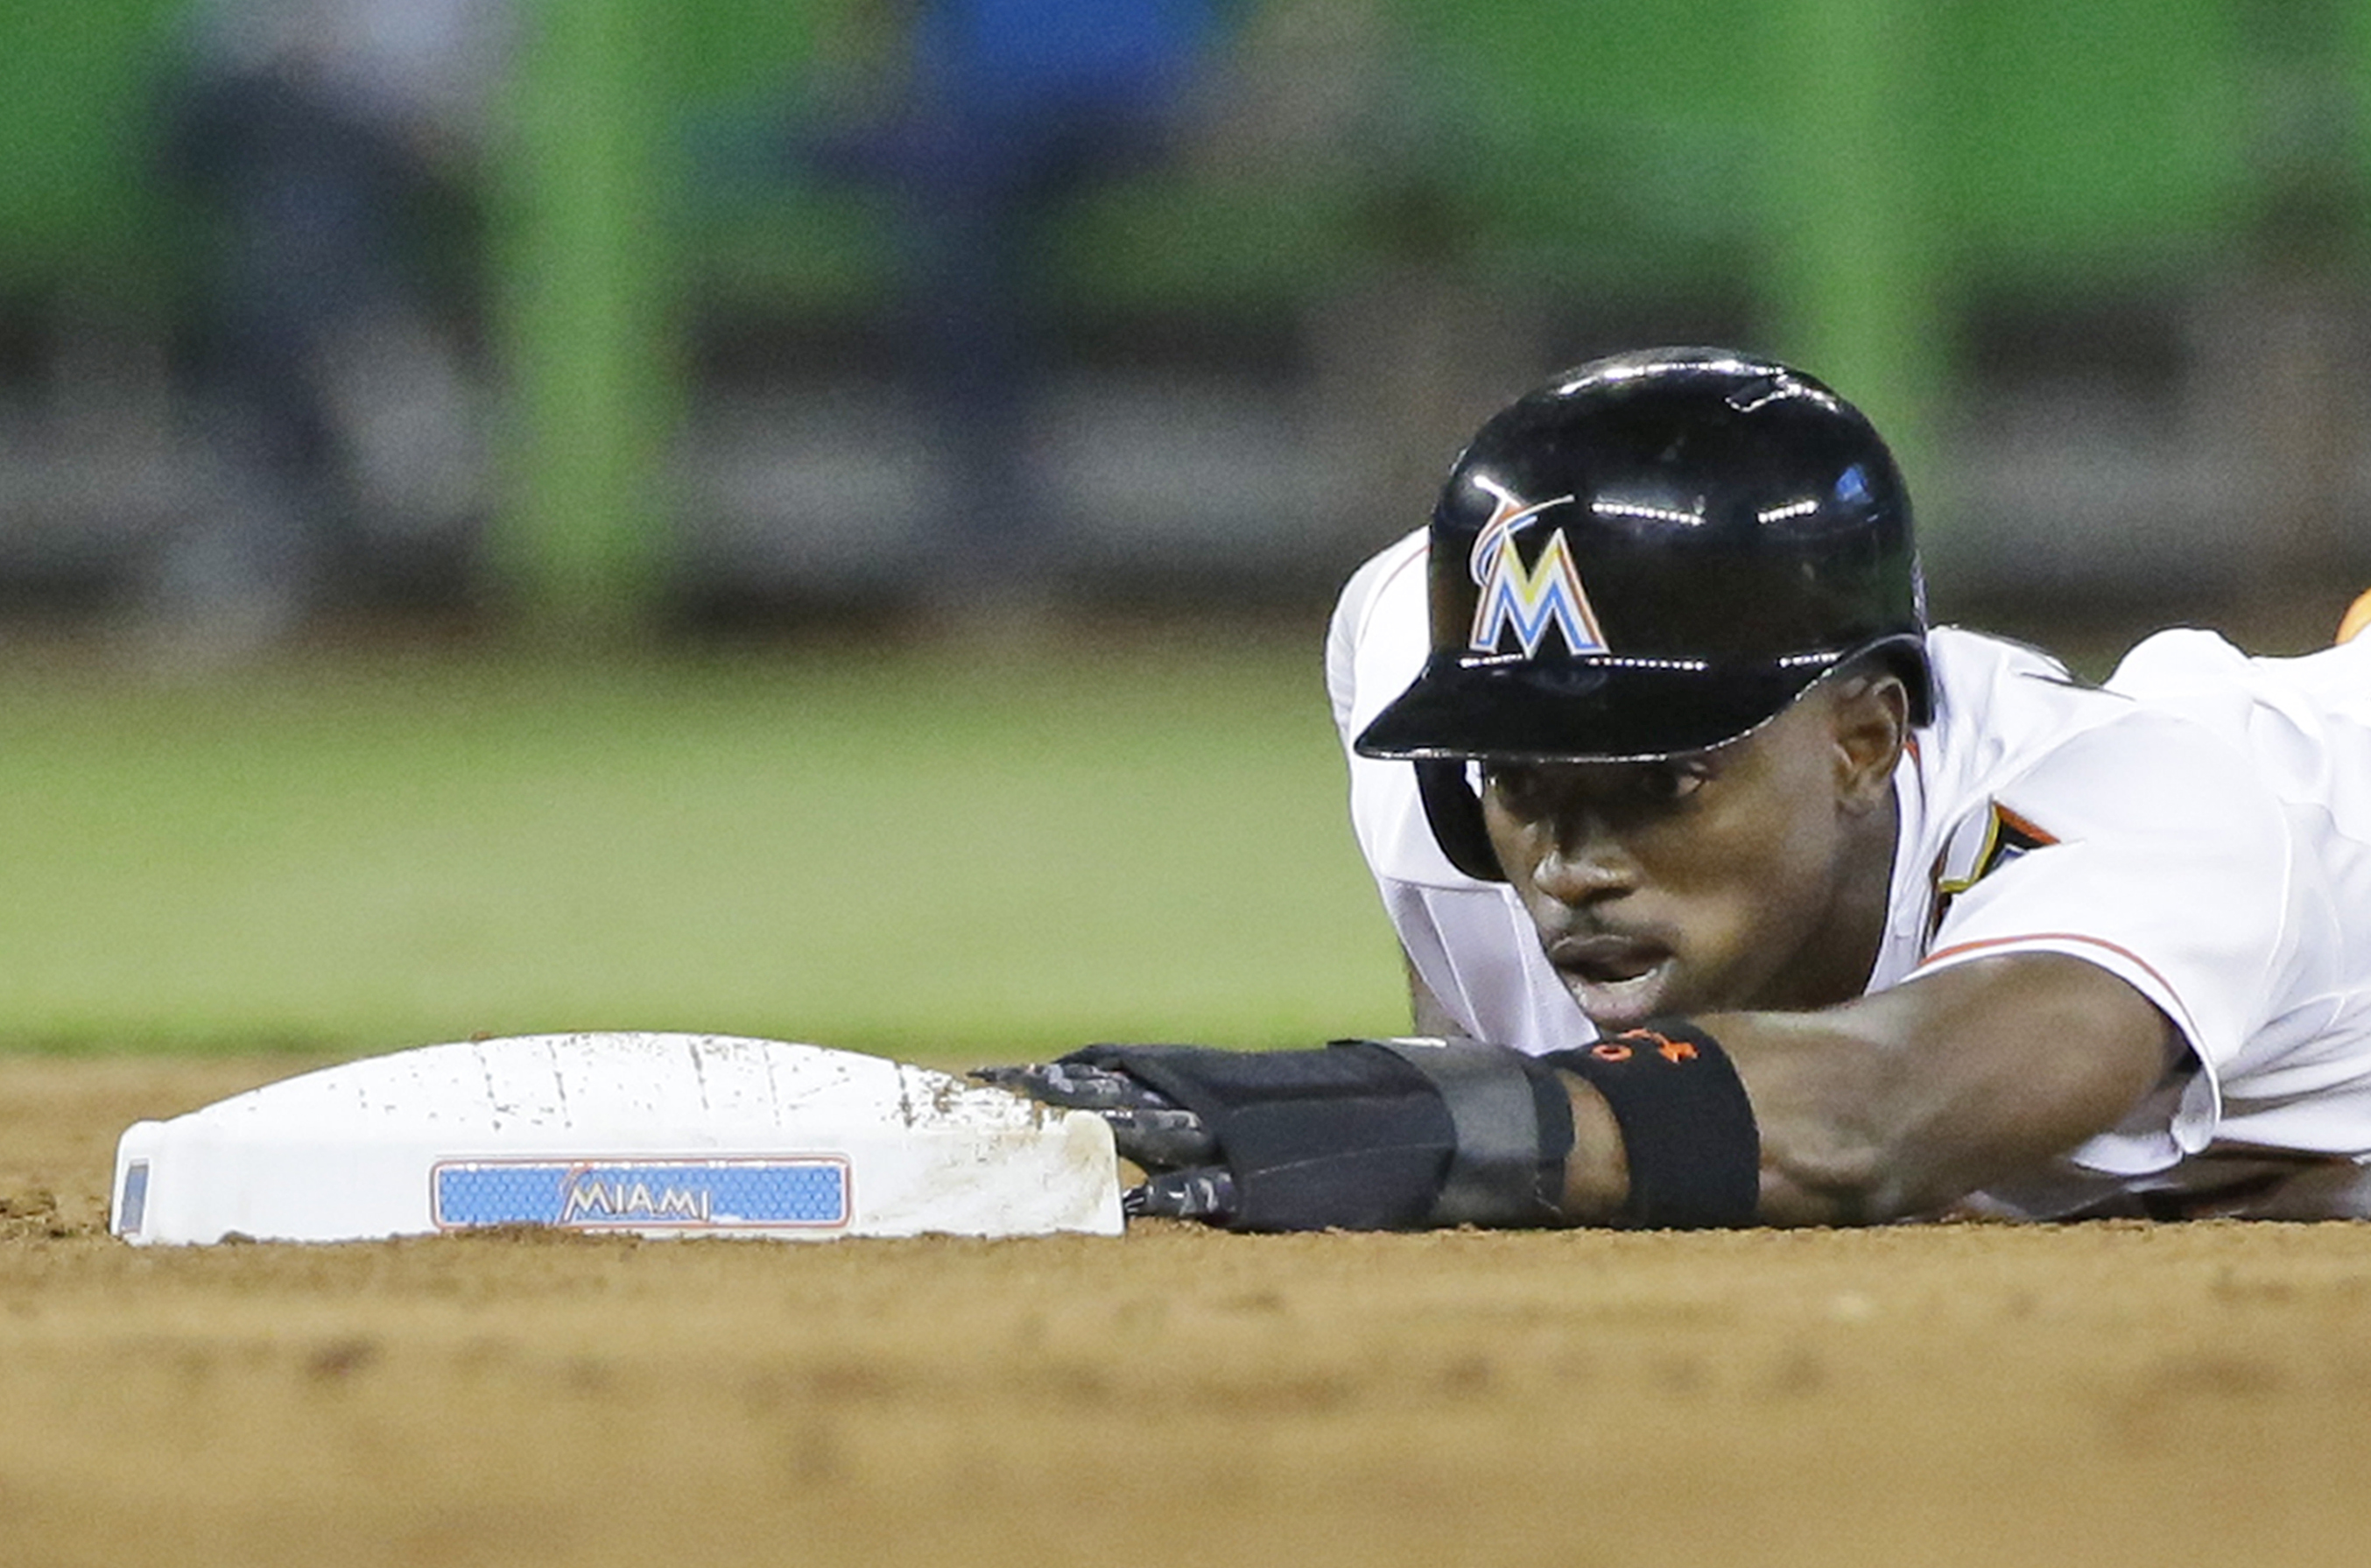 Miami Marlins' Dee Gordon hangs on to the base after stealing second during the fourth inning of a baseball game against the Pittsburgh Pirates, Tuesday, Aug. 25, 2015, in Miami. (AP Photo/Wilfredo Lee)